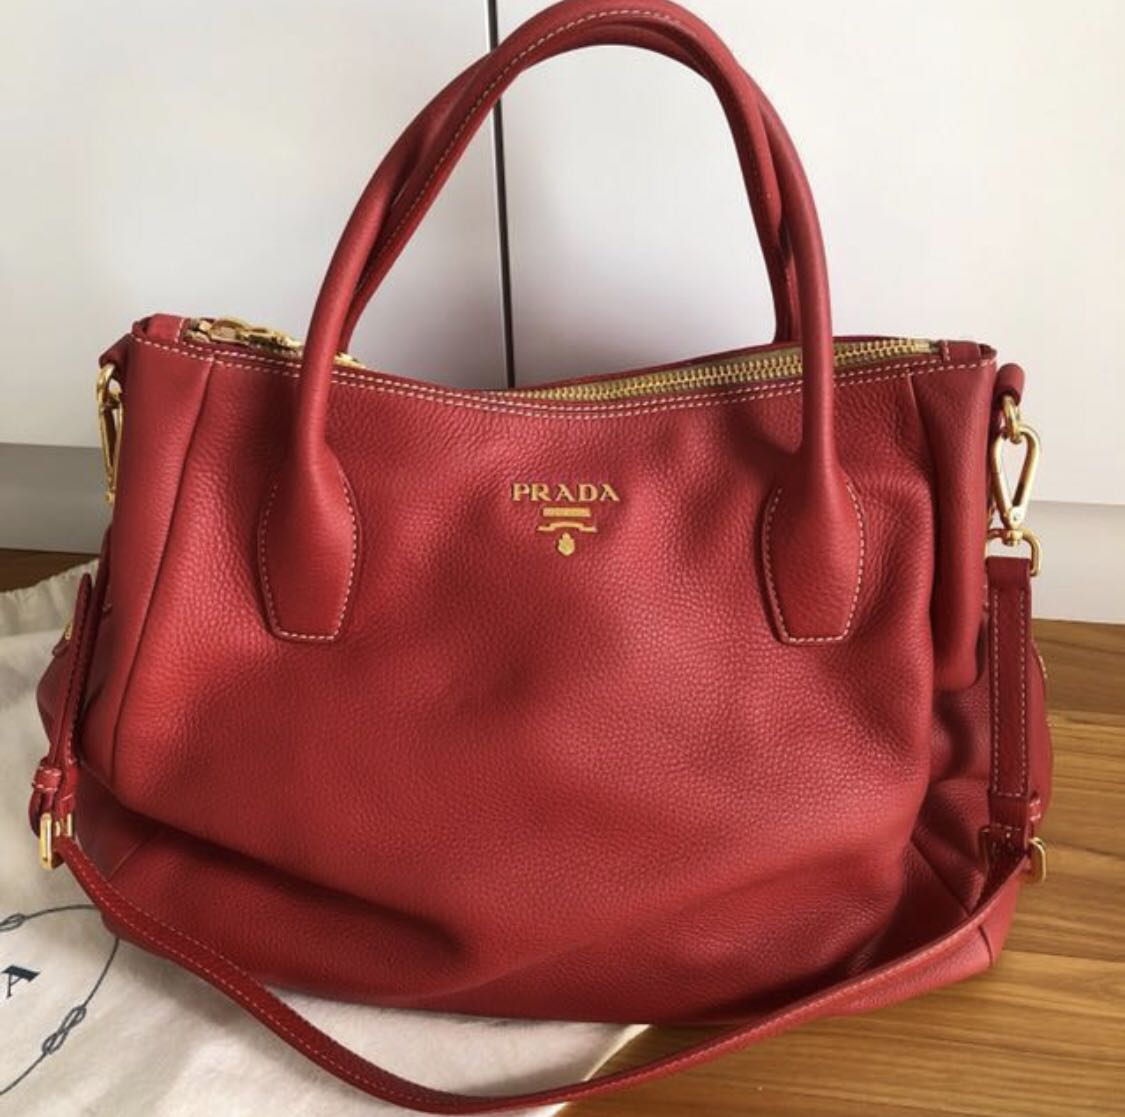 31b1f96bfc ... best authentic prada vitello daino red leather tote bag gold hardware  womens fashion bags wallets handbags